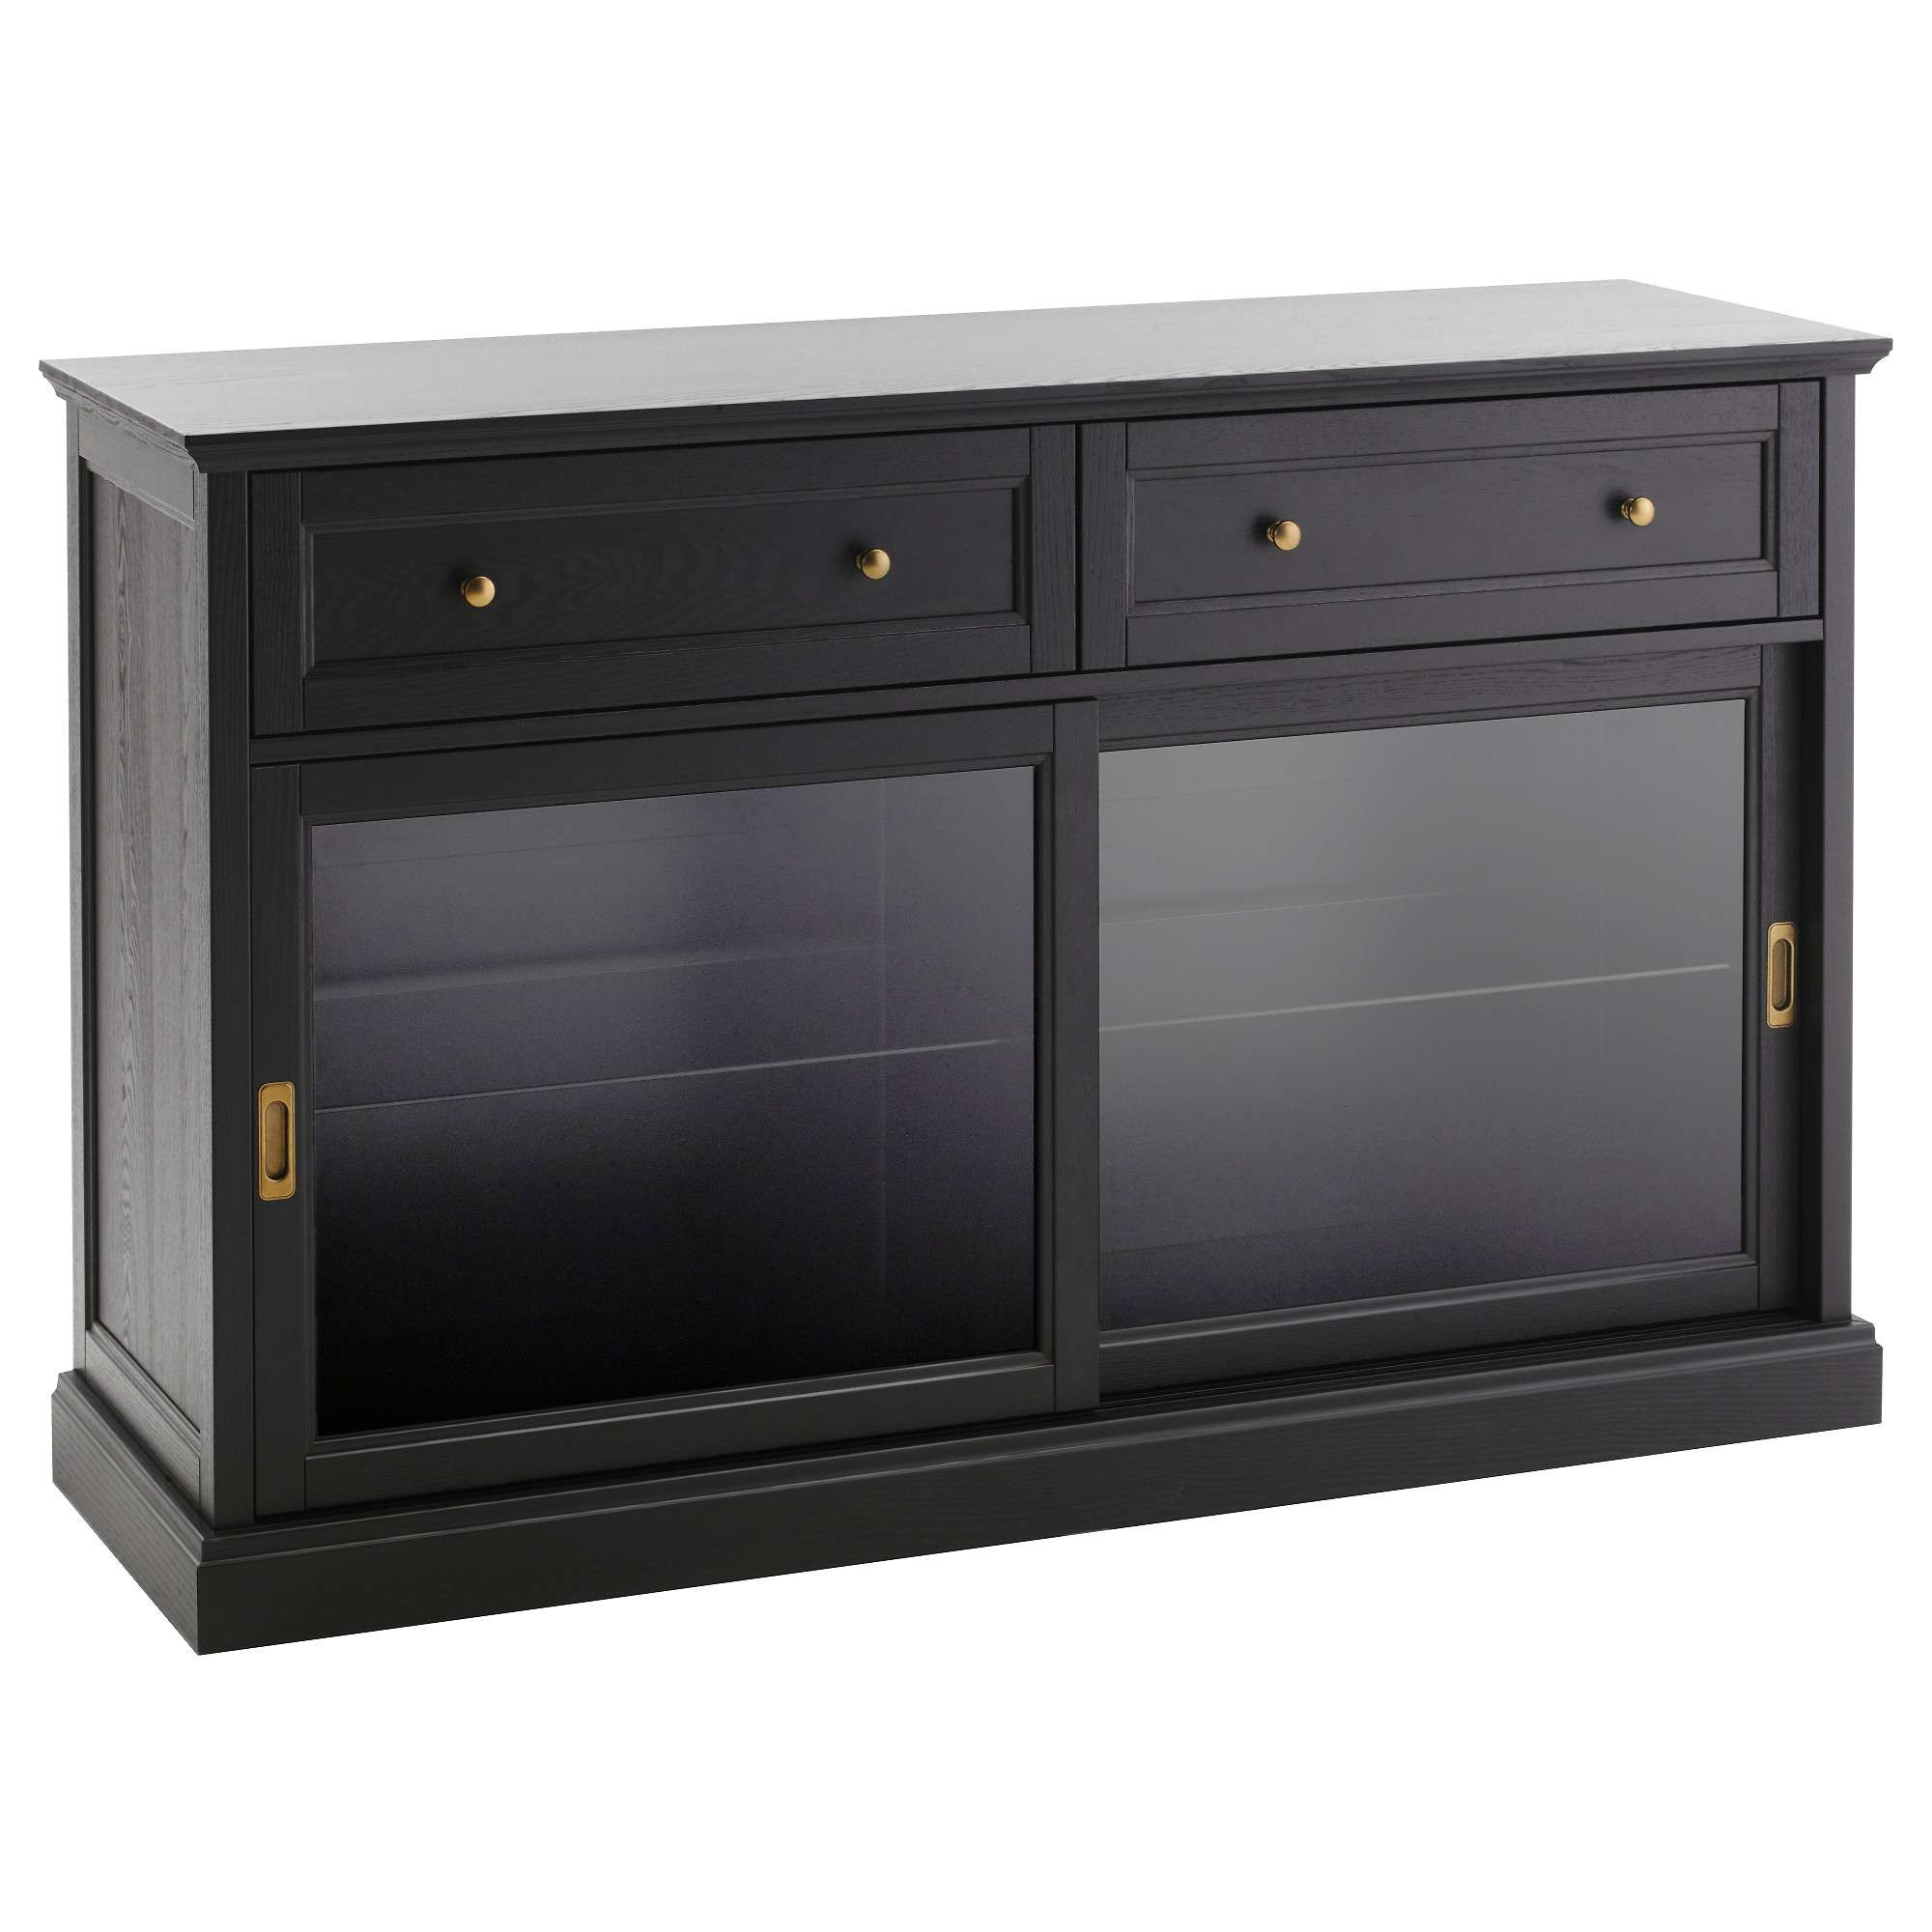 Buffet Tables & Sideboards – Ikea Within 7 Foot Sideboards (View 4 of 20)